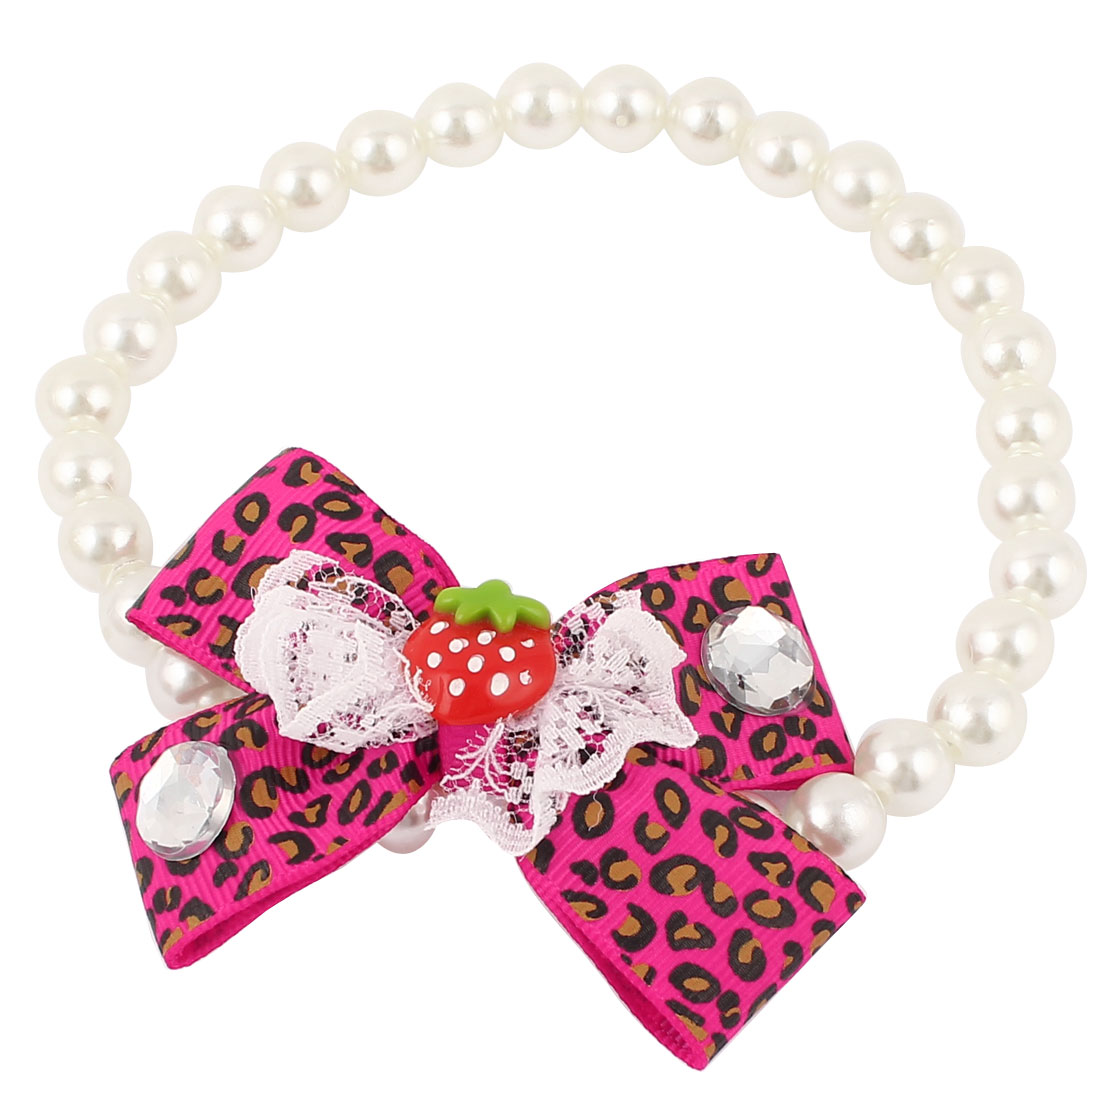 Bowtie Lace Faux Crystal Accent Pet Dog Plastic Beads Imitation Pearls Collar Necklace White Fuchsia M